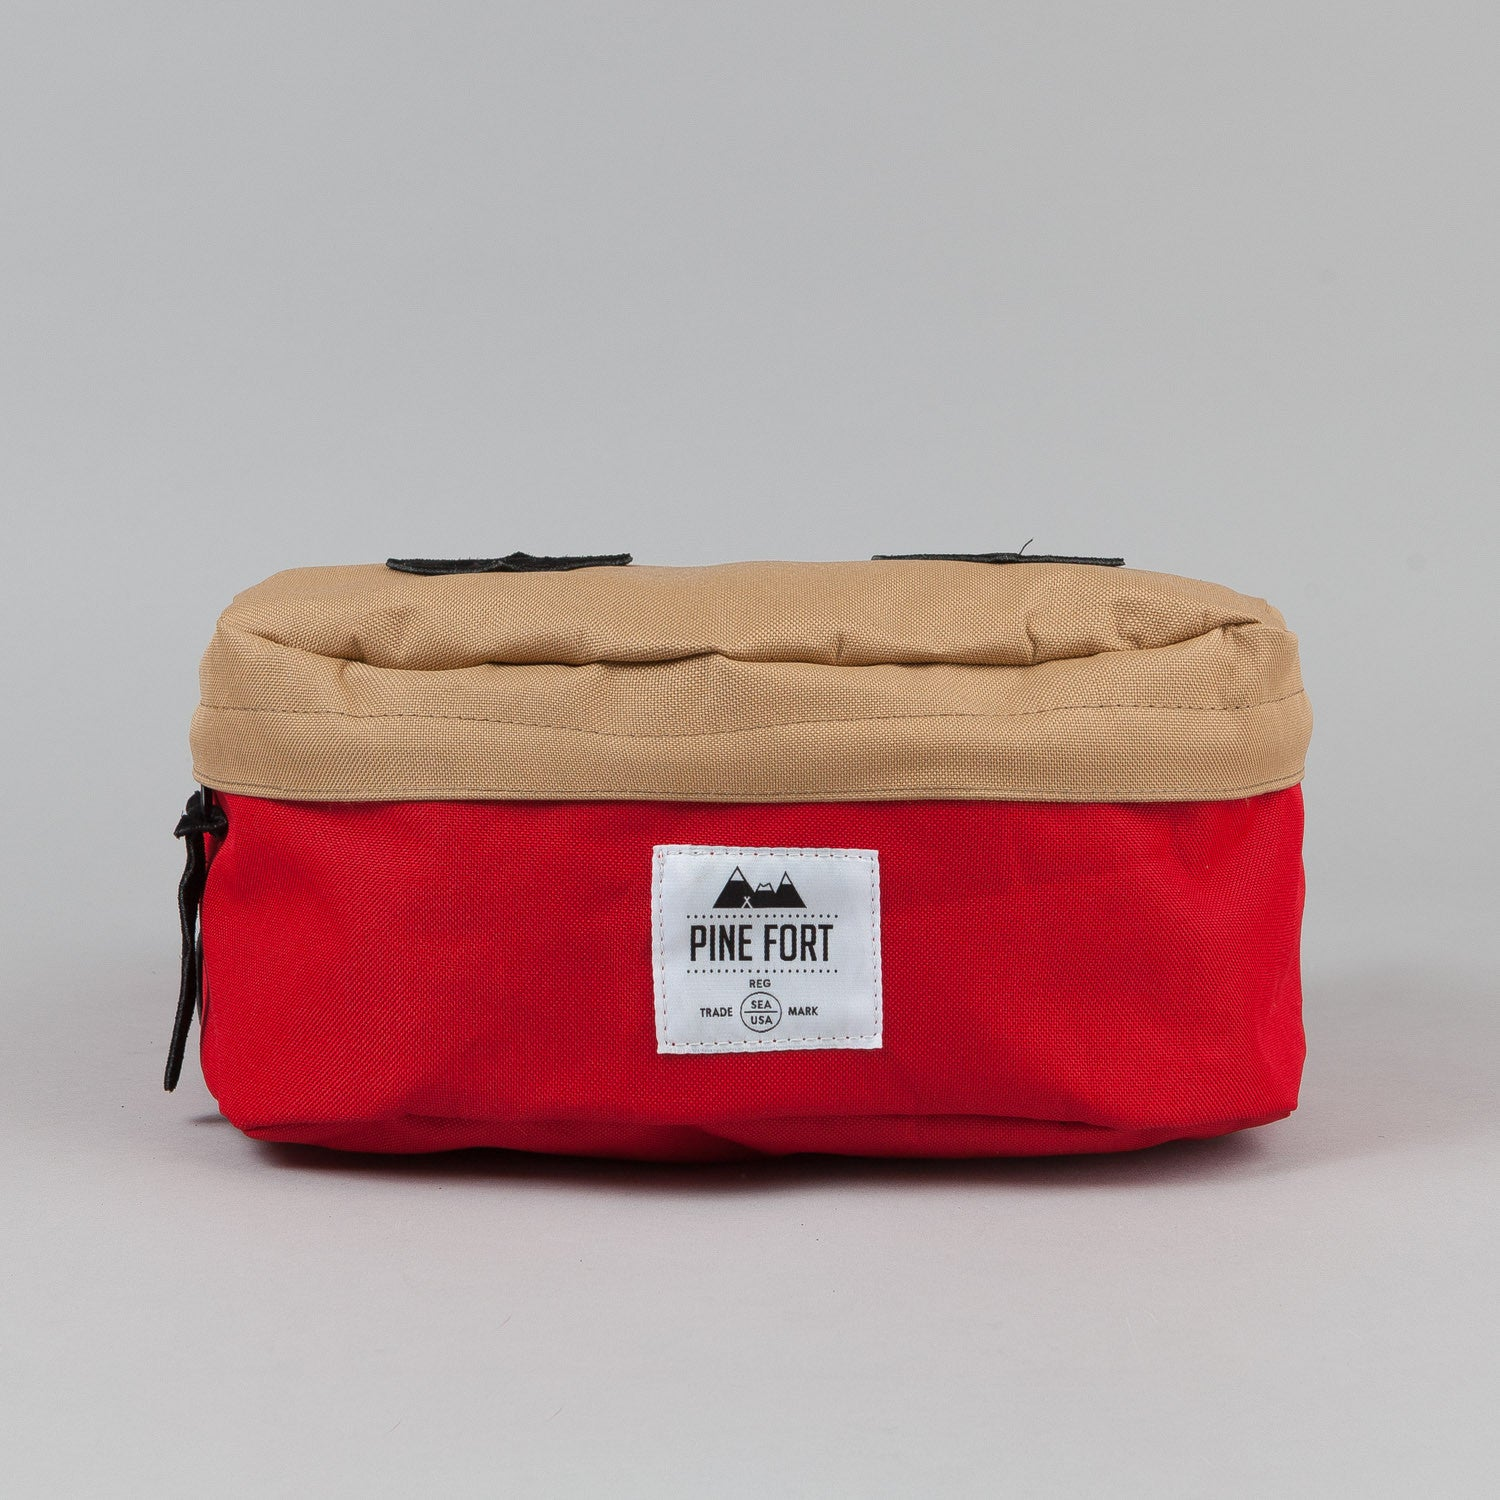 Pine Fort Waist Pack Tan / Red